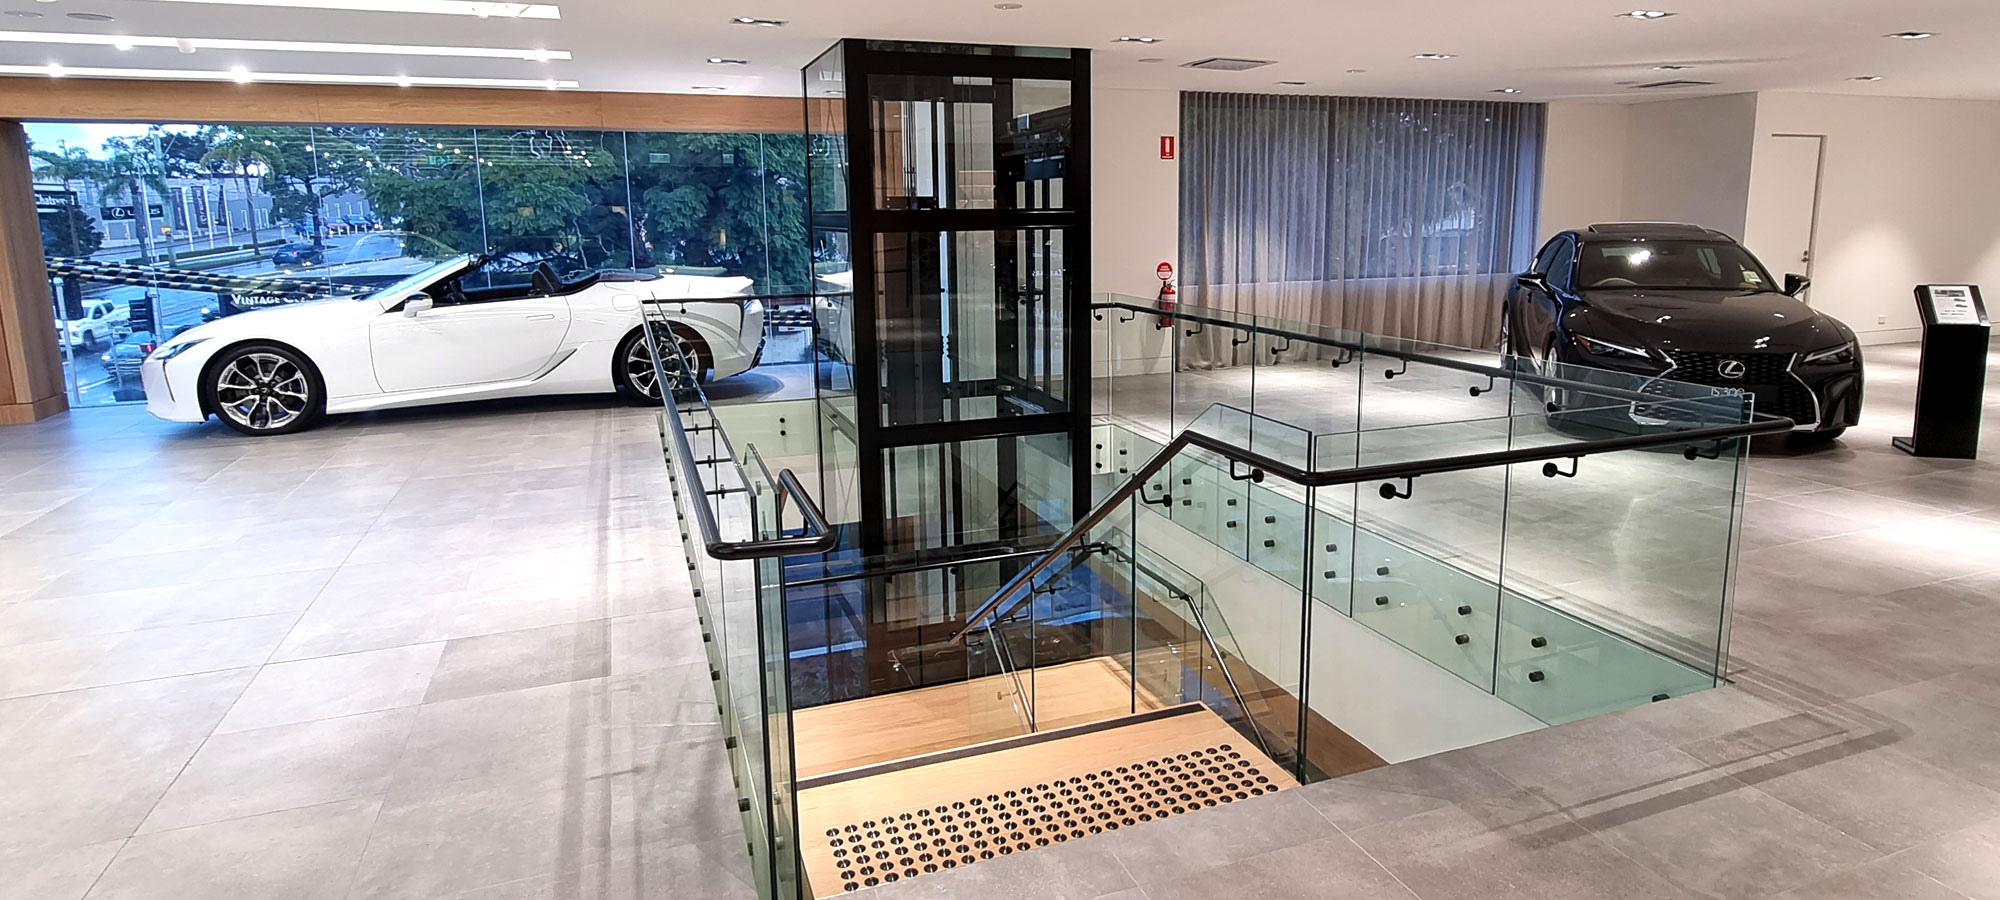 commercial lift chatswood NSW